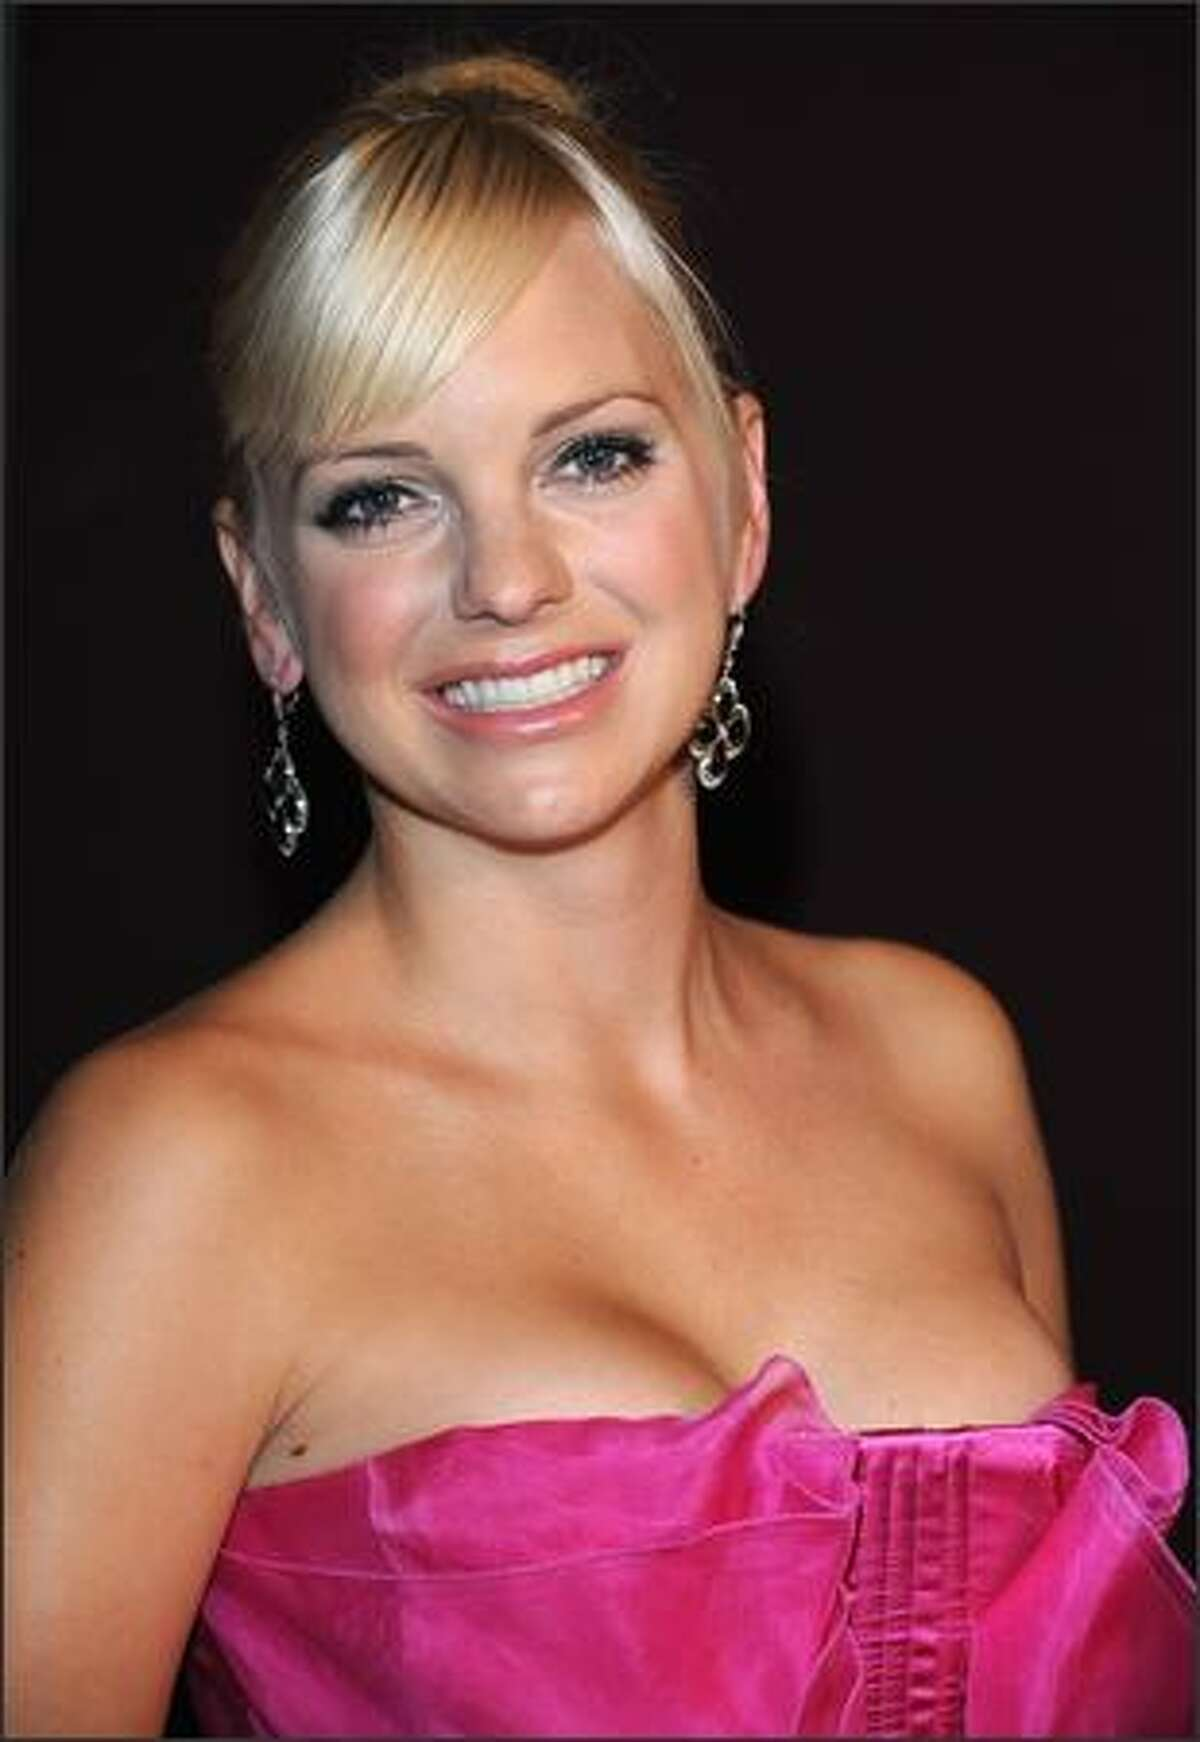 Actress Anna Faris poses as she attends the Premiere of the